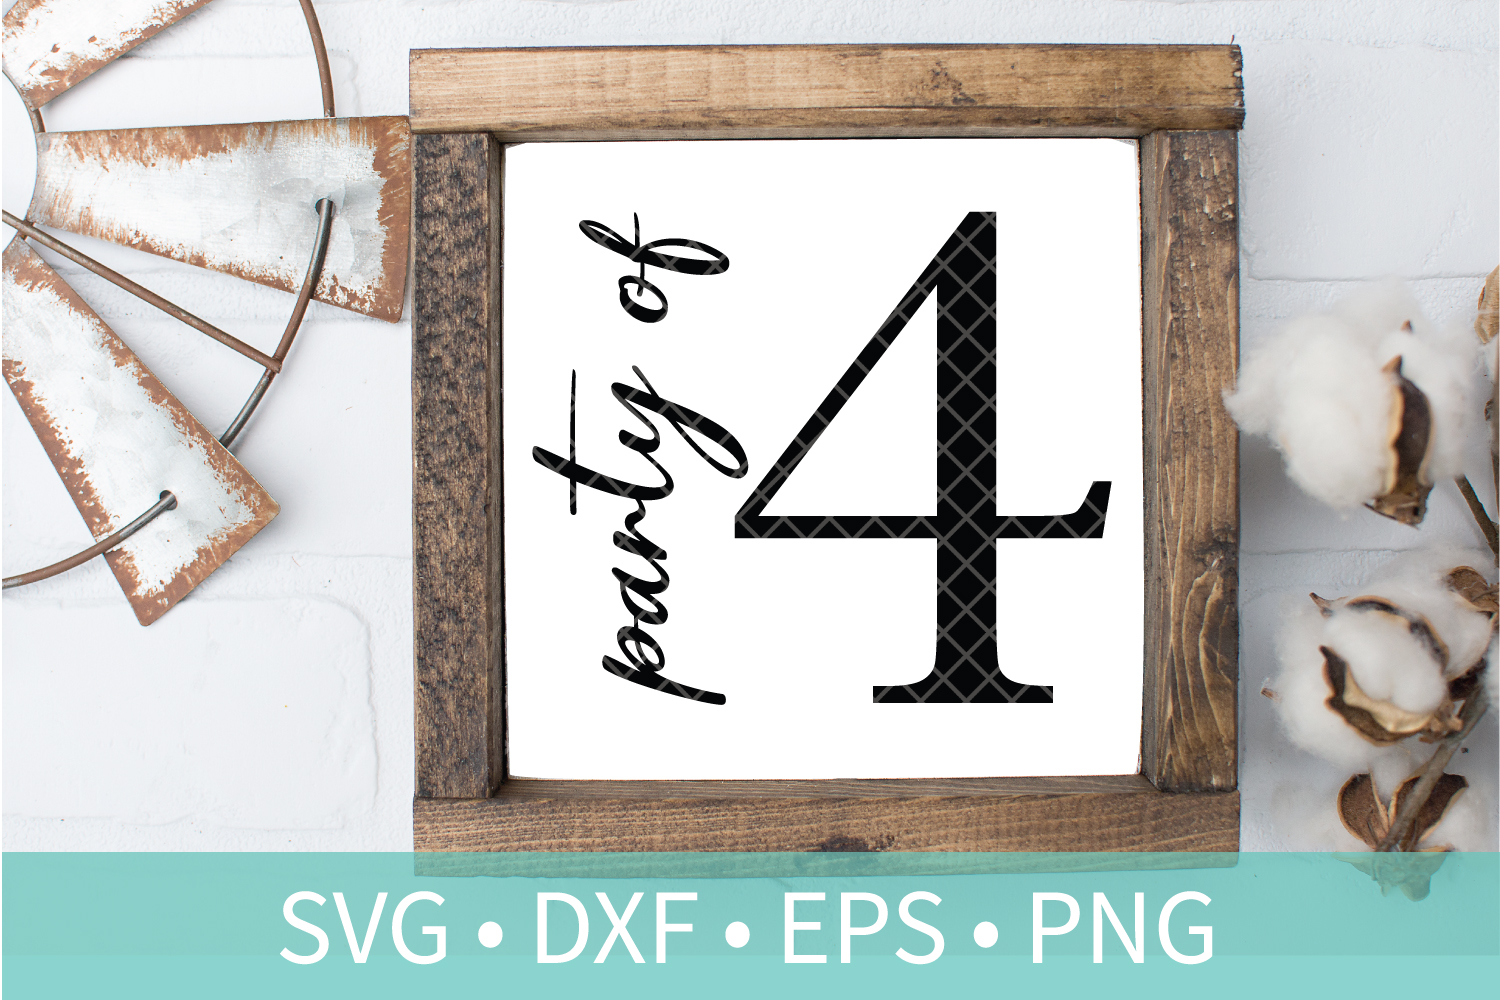 Party of 4 Family Sign SVG DXF EPS PNG Clipart Cut File example image 1